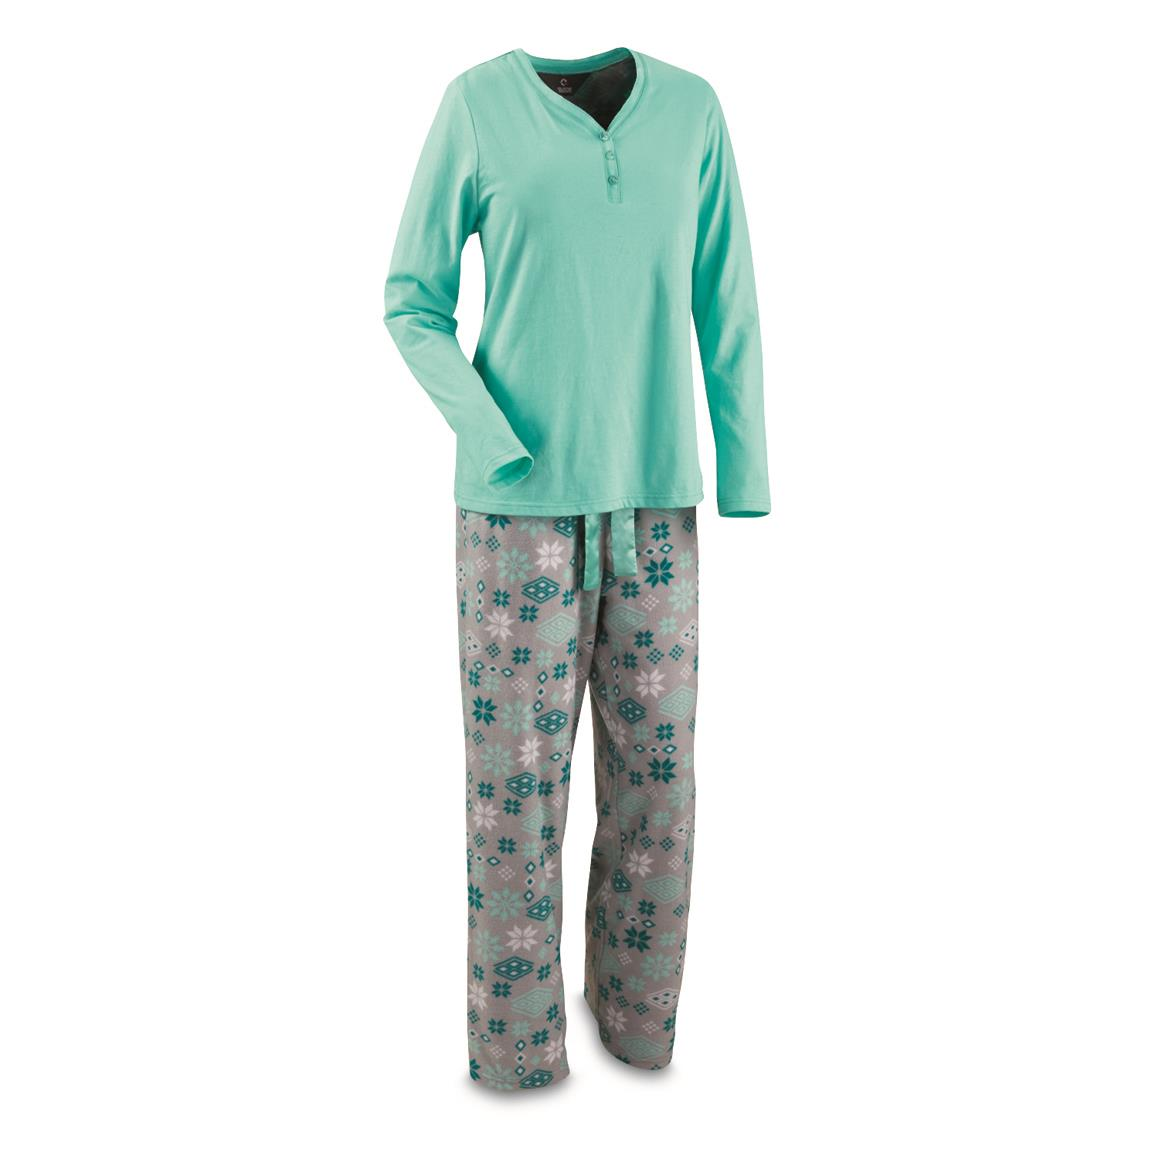 Guide Gear Women's 2 Piece Pajama Set, Mint